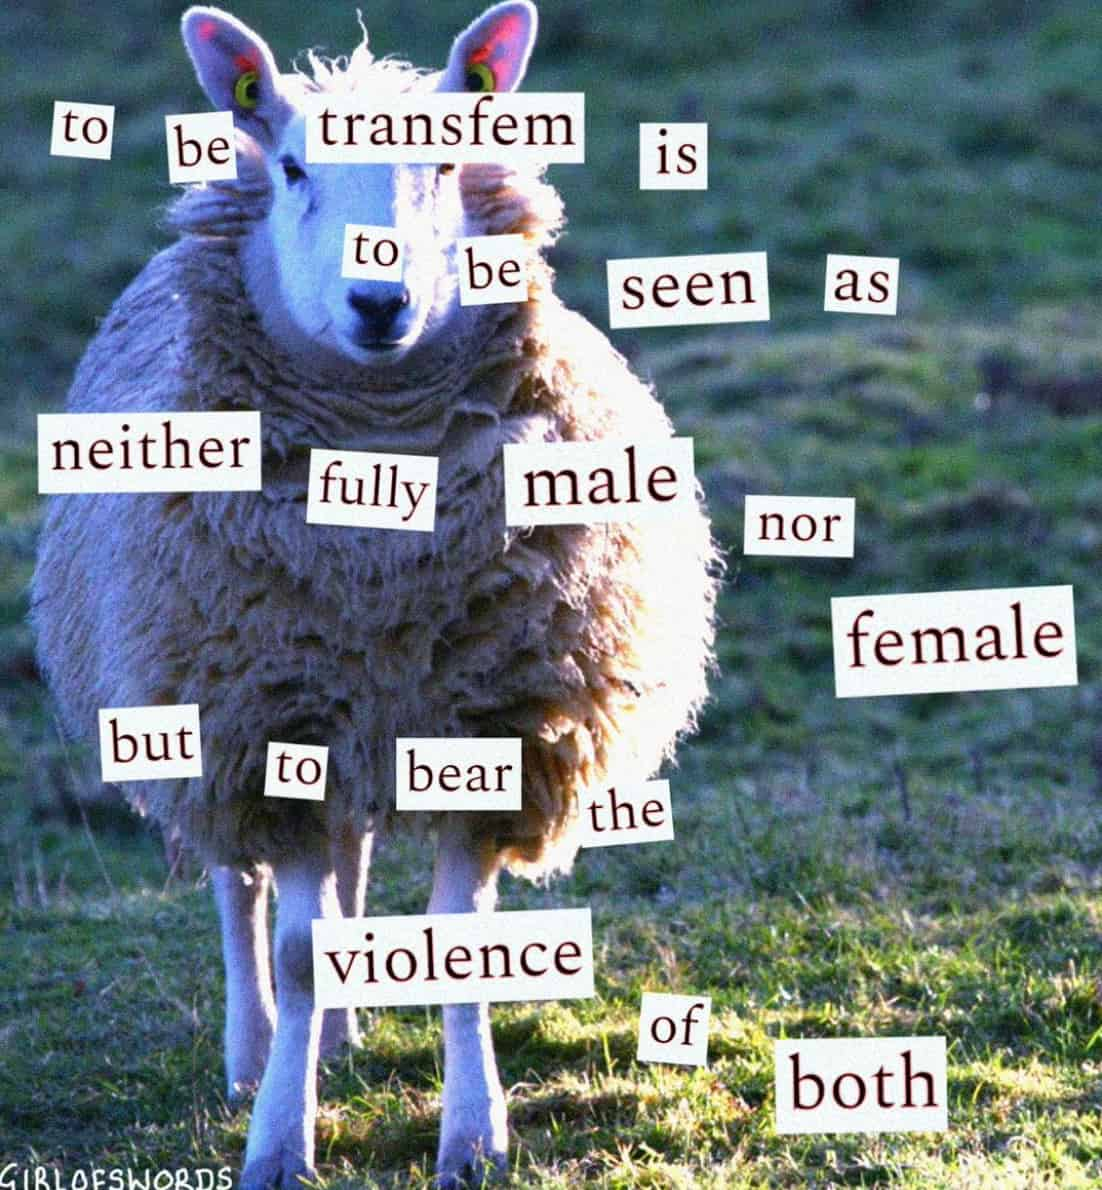 Eden Girl of Swords trans rights text multi media visual artist collages irony